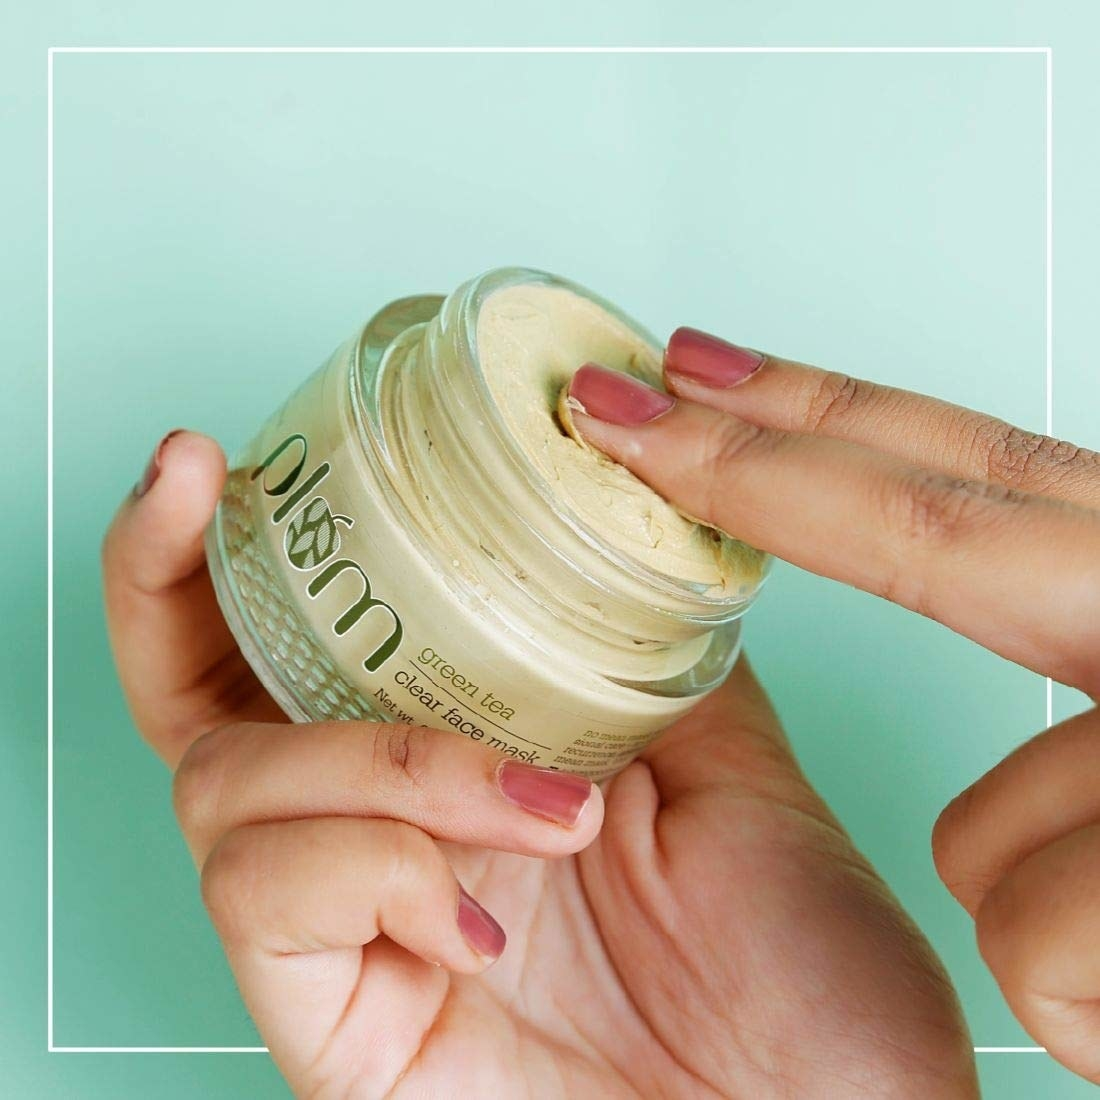 A hand holding the green tea clear face mask from Plum